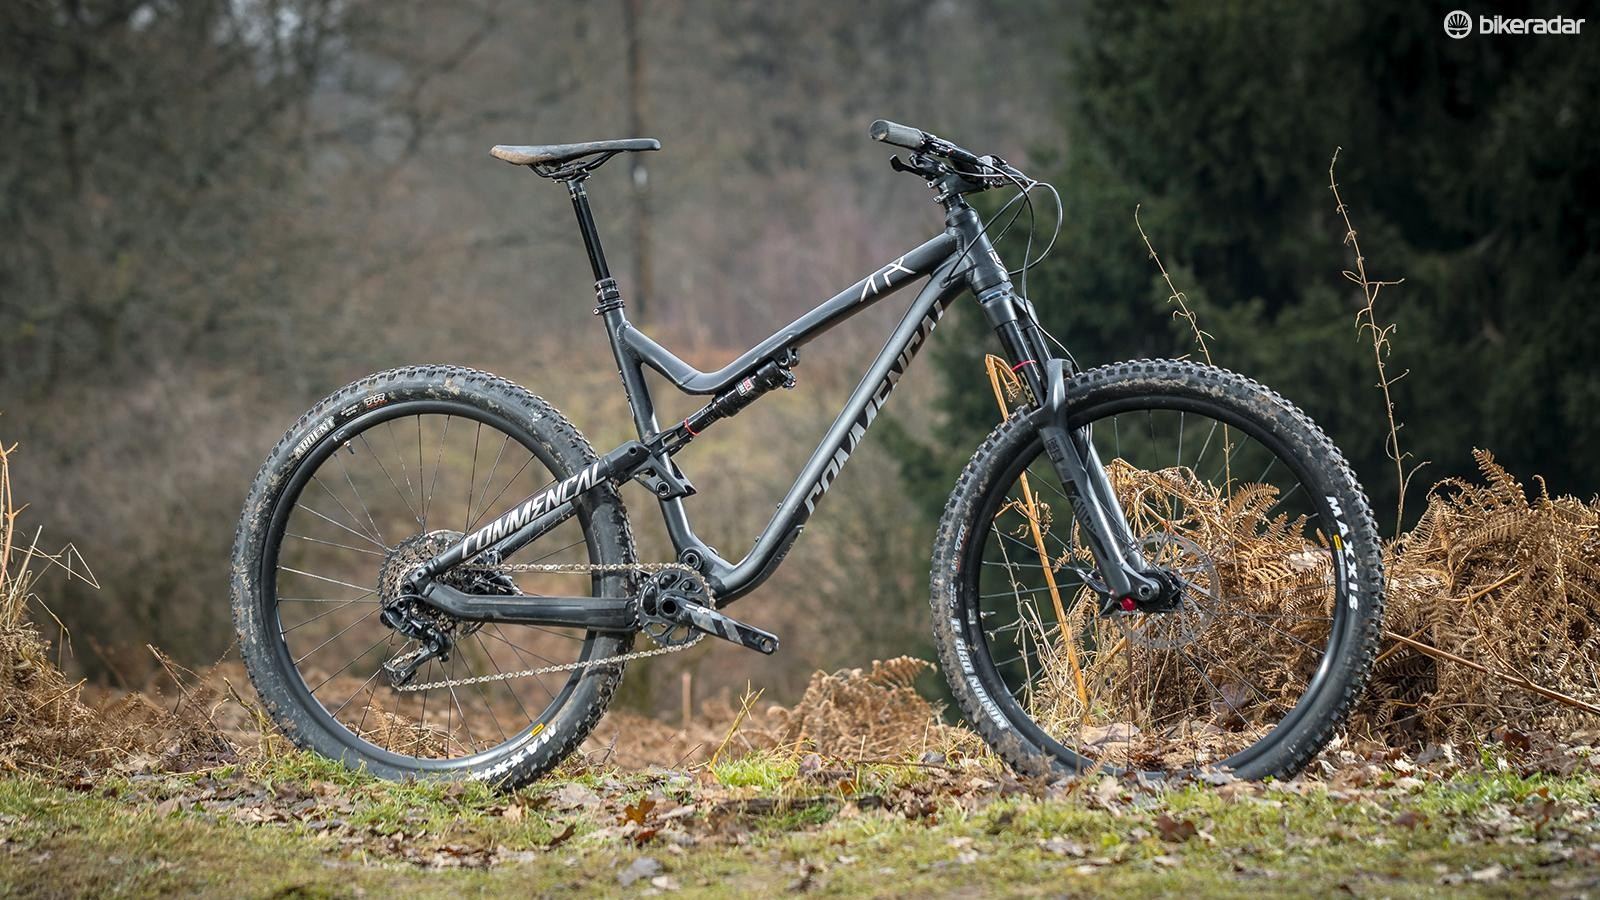 The Commencal Meta Trail V4.2 Essential 650b